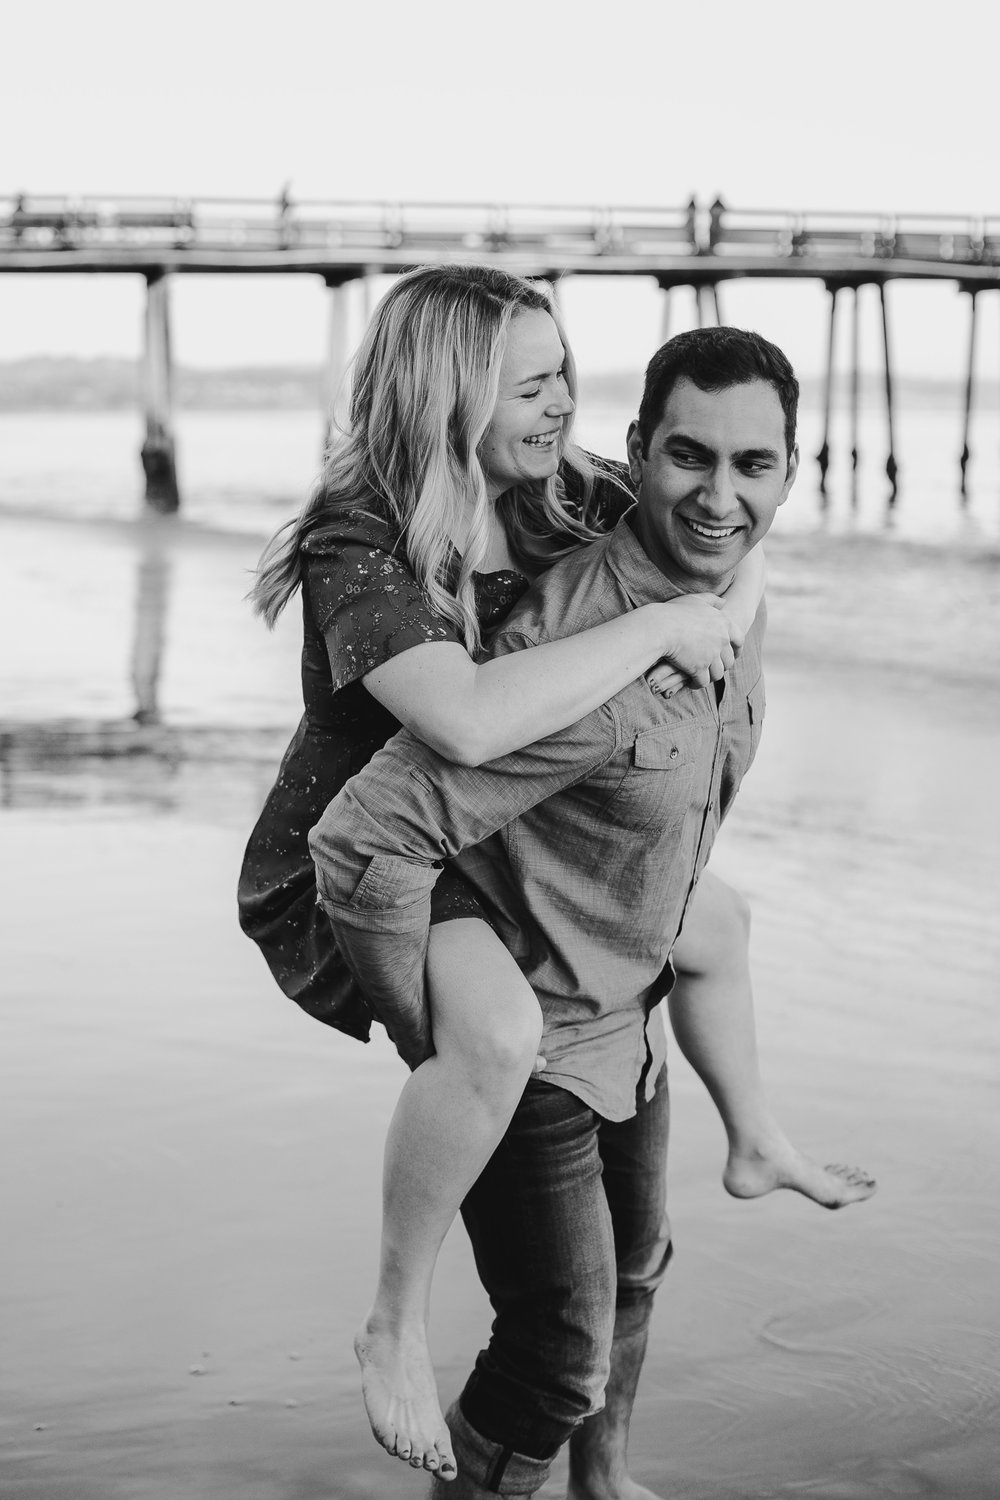 Archer Inspired Photography Capitola Beach Santa Cruz Wedding Engagement Lifestyle Session Photographer-108.jpg